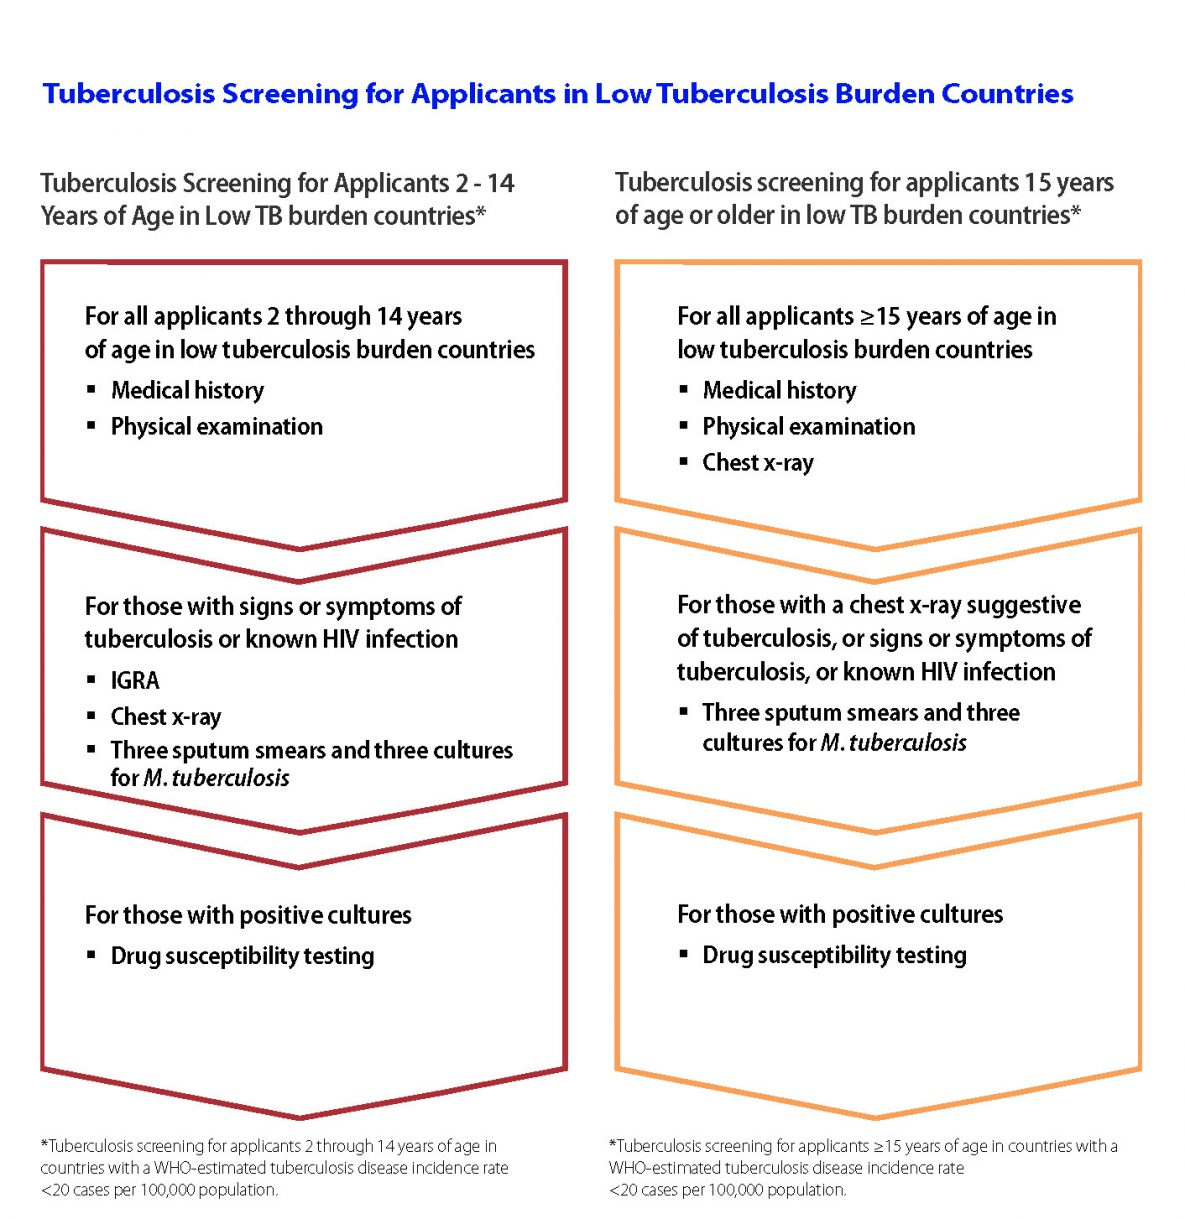 Figure 1: Tuberculosis Screening for Applicants in Low Tuberculosis Burden Countries